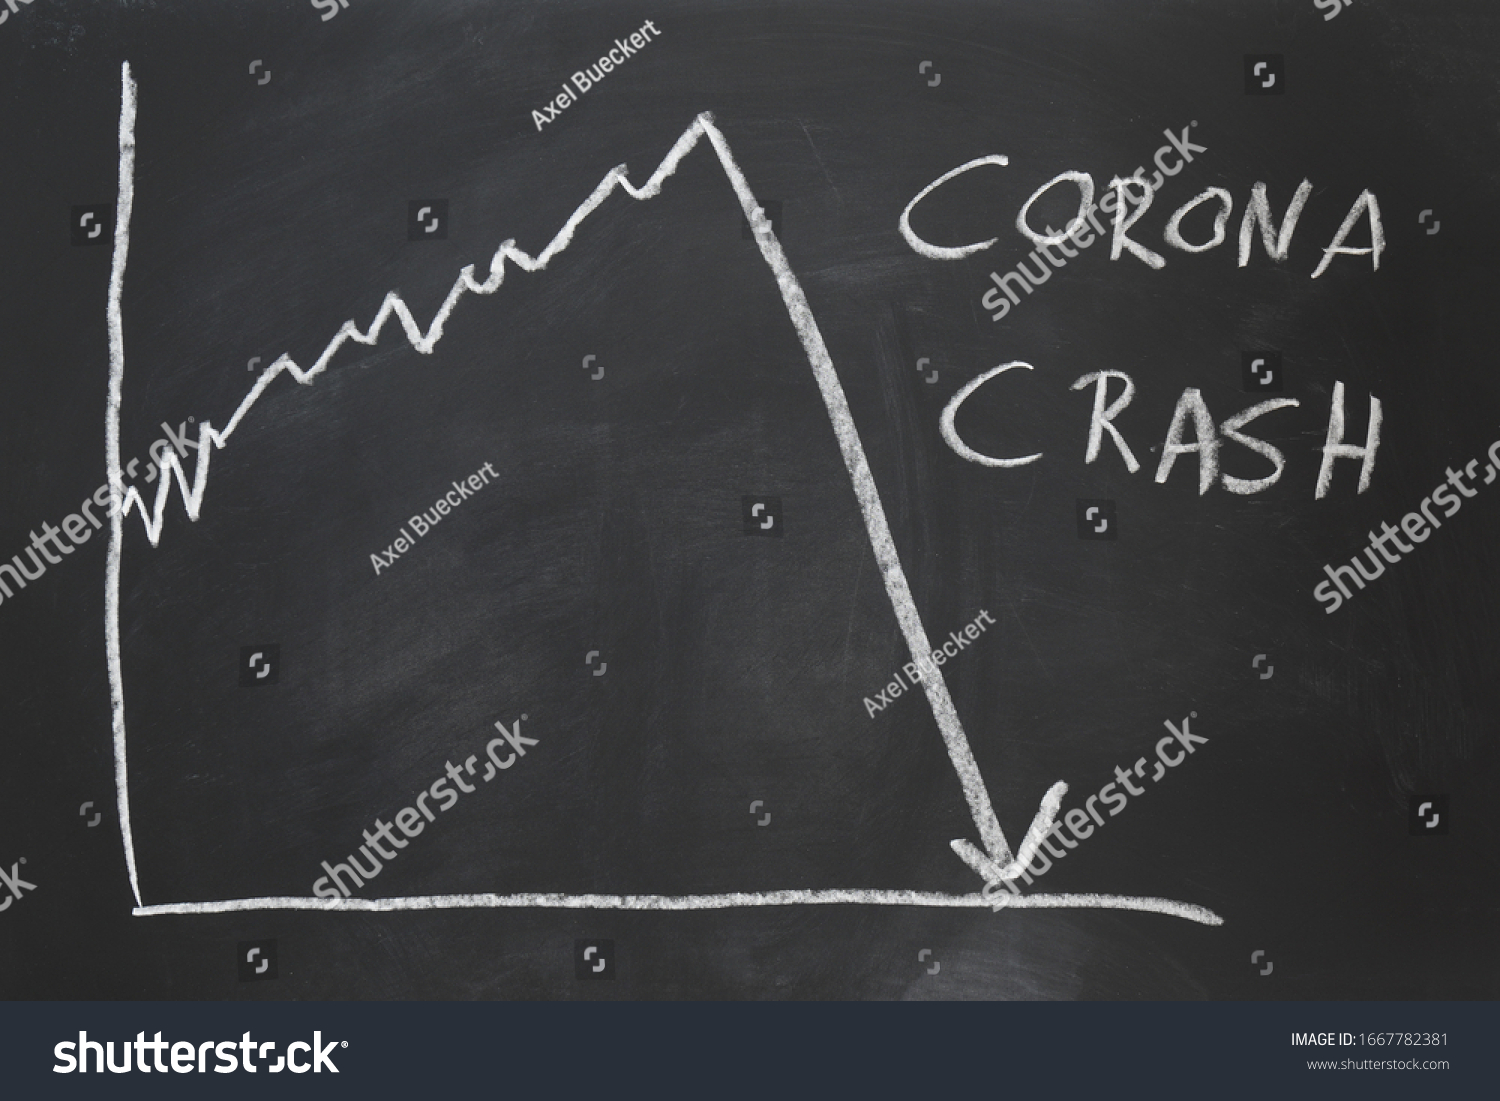 corona crash - hand-drawn graph on chalkboard showing stock market collapse or financial economy crisis caused by coronavirus #1667782381